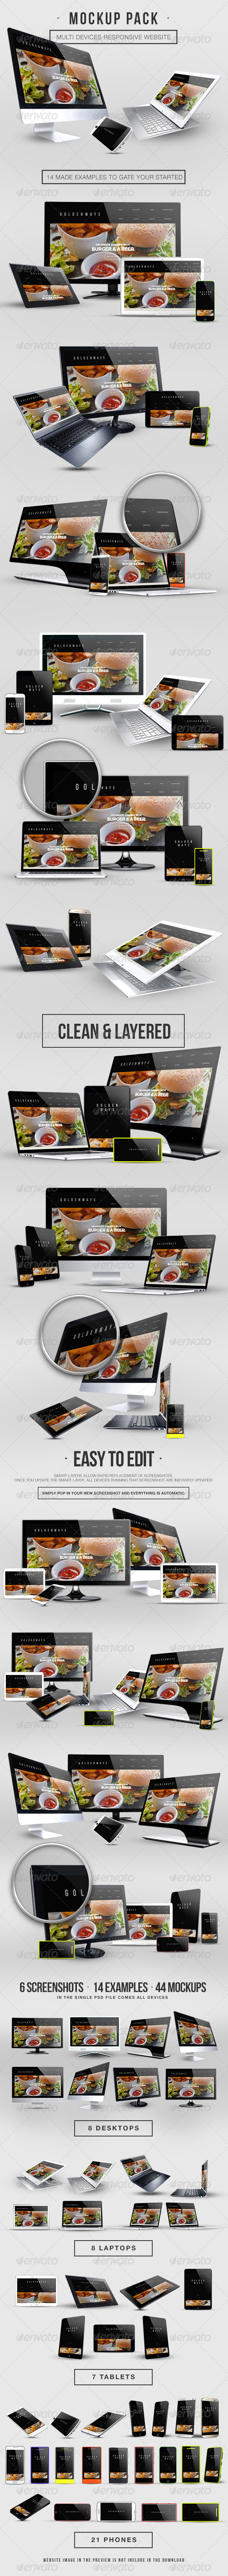 Multi Devices Responsive Website Mockup Pack - Website Displays